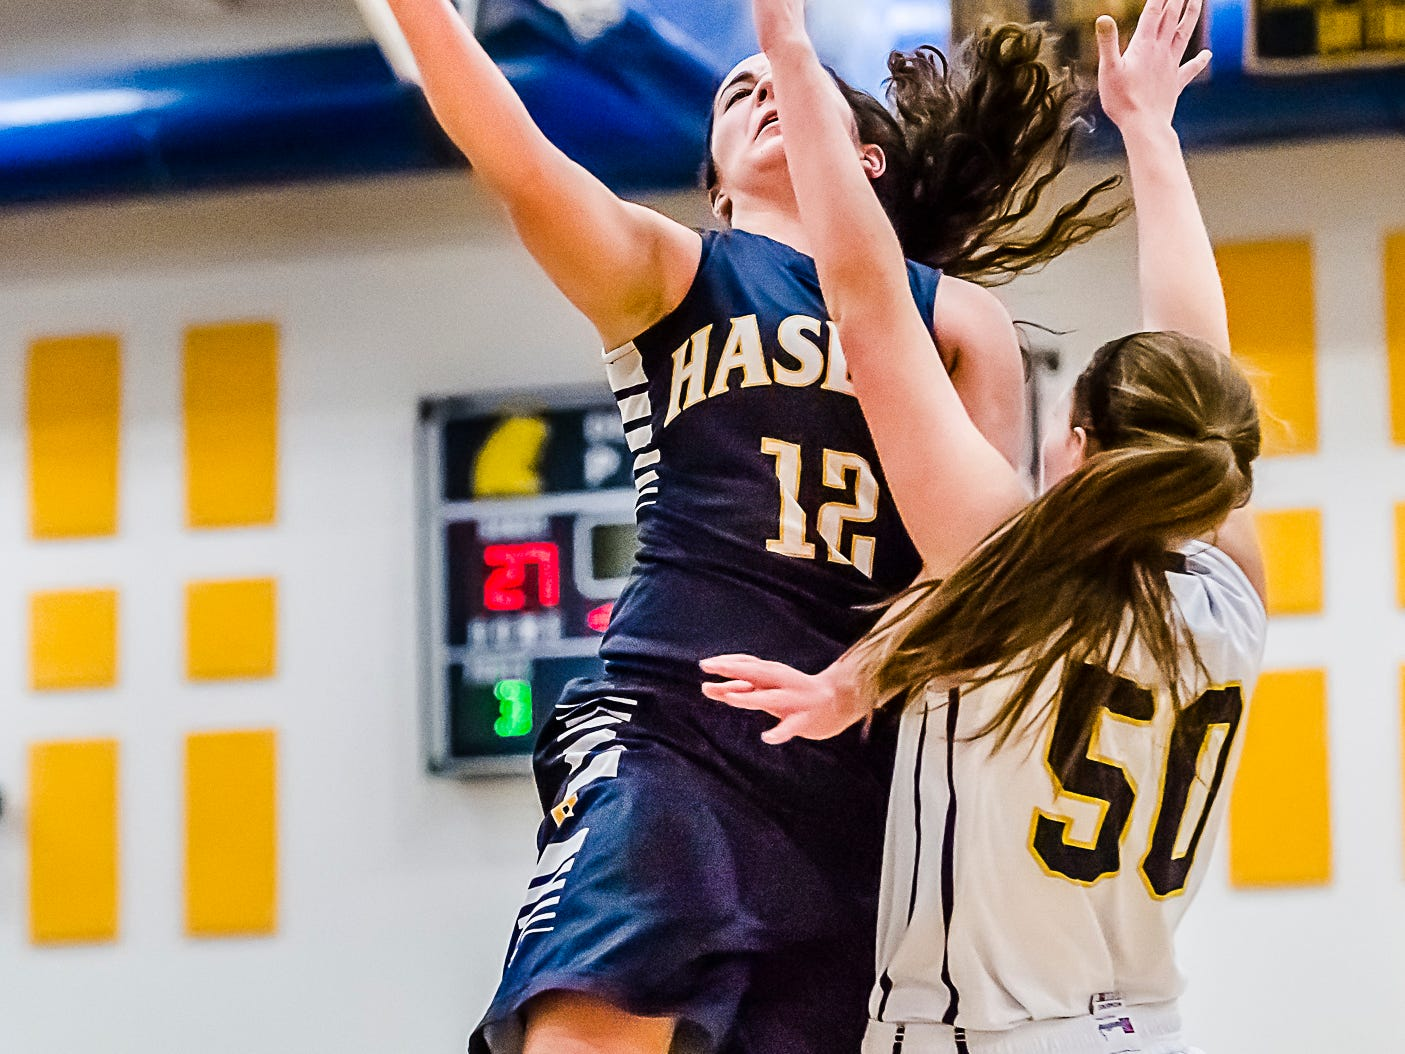 Haslett's Megan Mowid had 16 points Friday to help the Class B top-ranked Vikings post a 55-44 win over Class A No. 1 DeWitt.